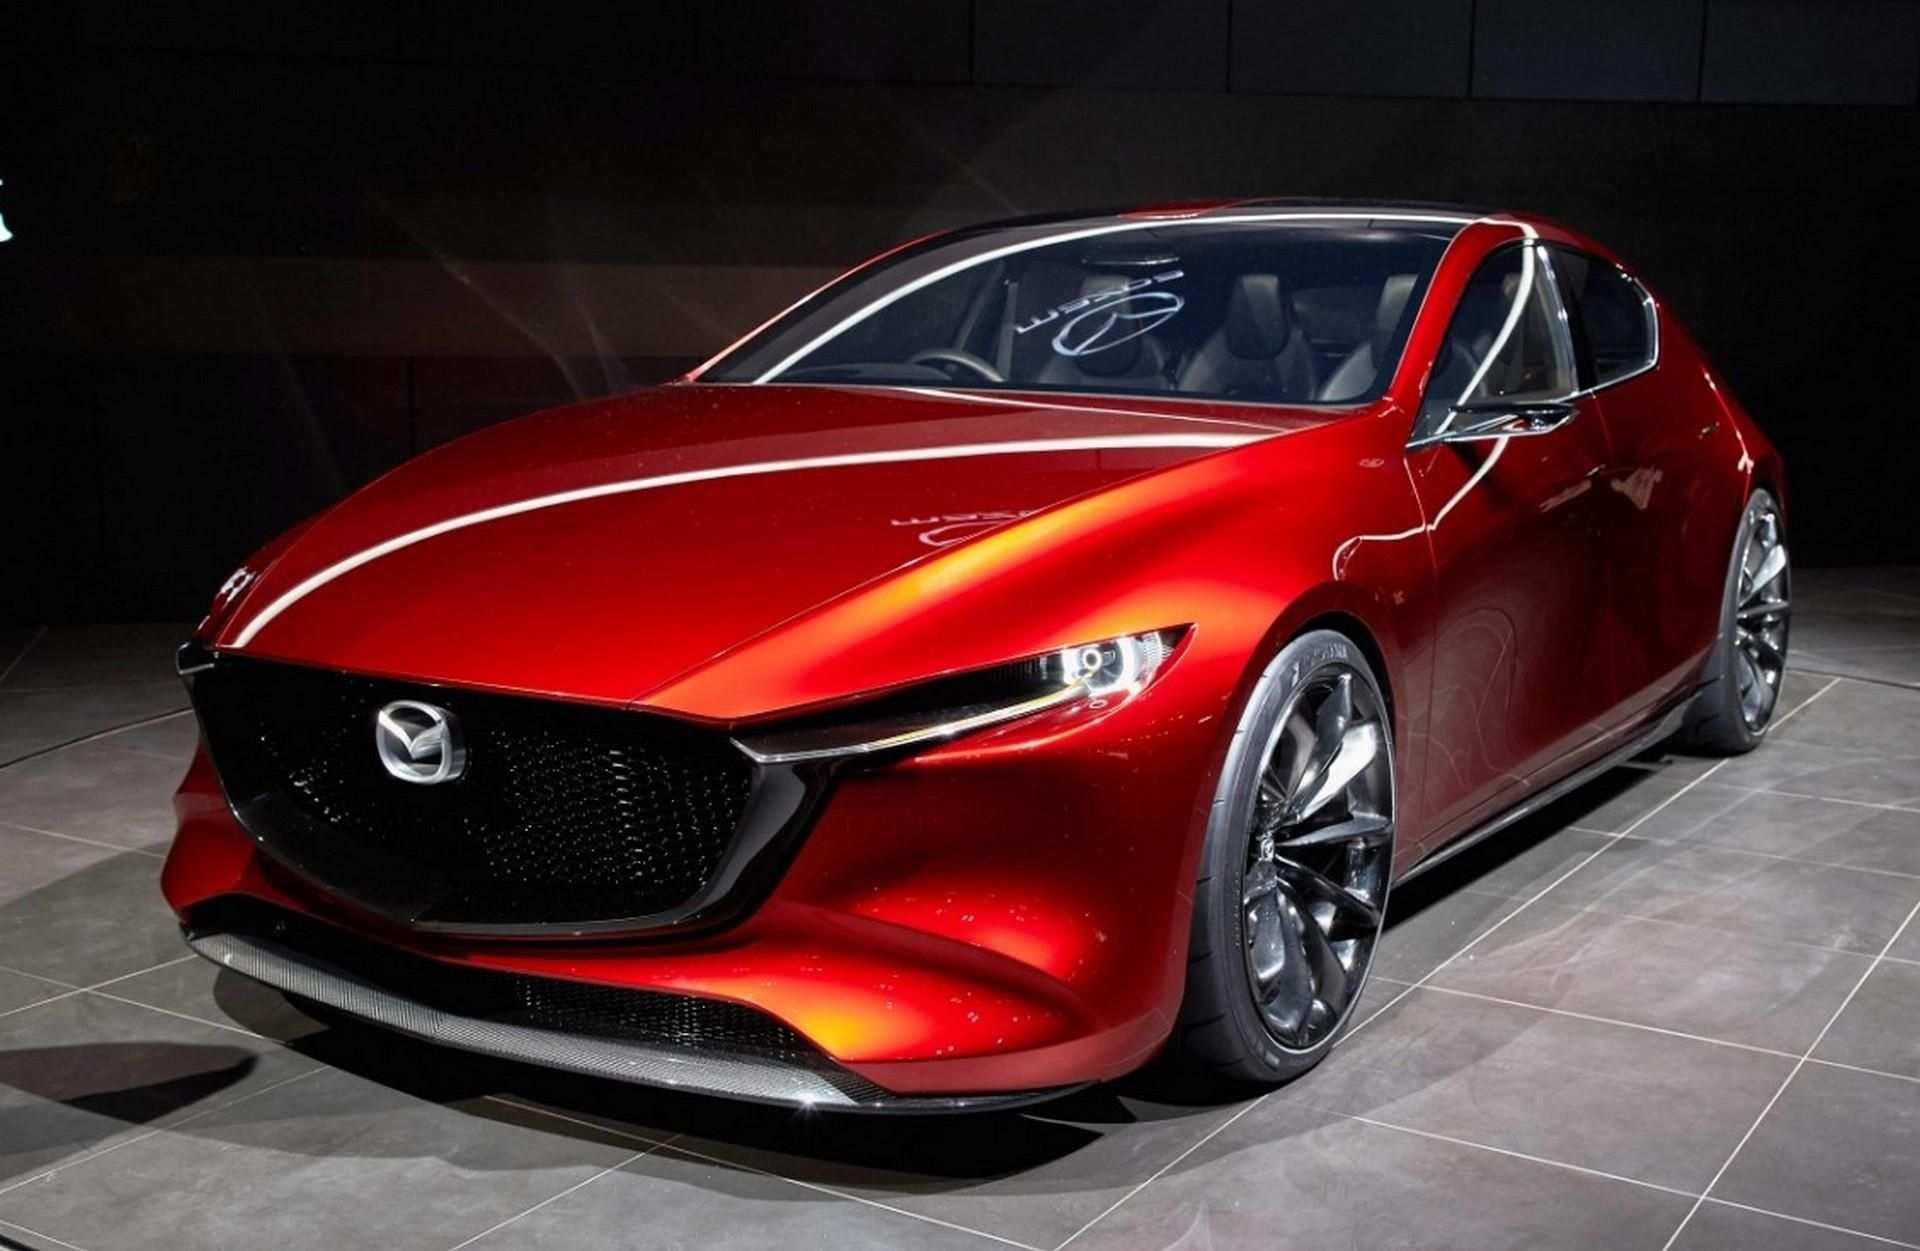 44 All New Mazda Kai 2020 Overview